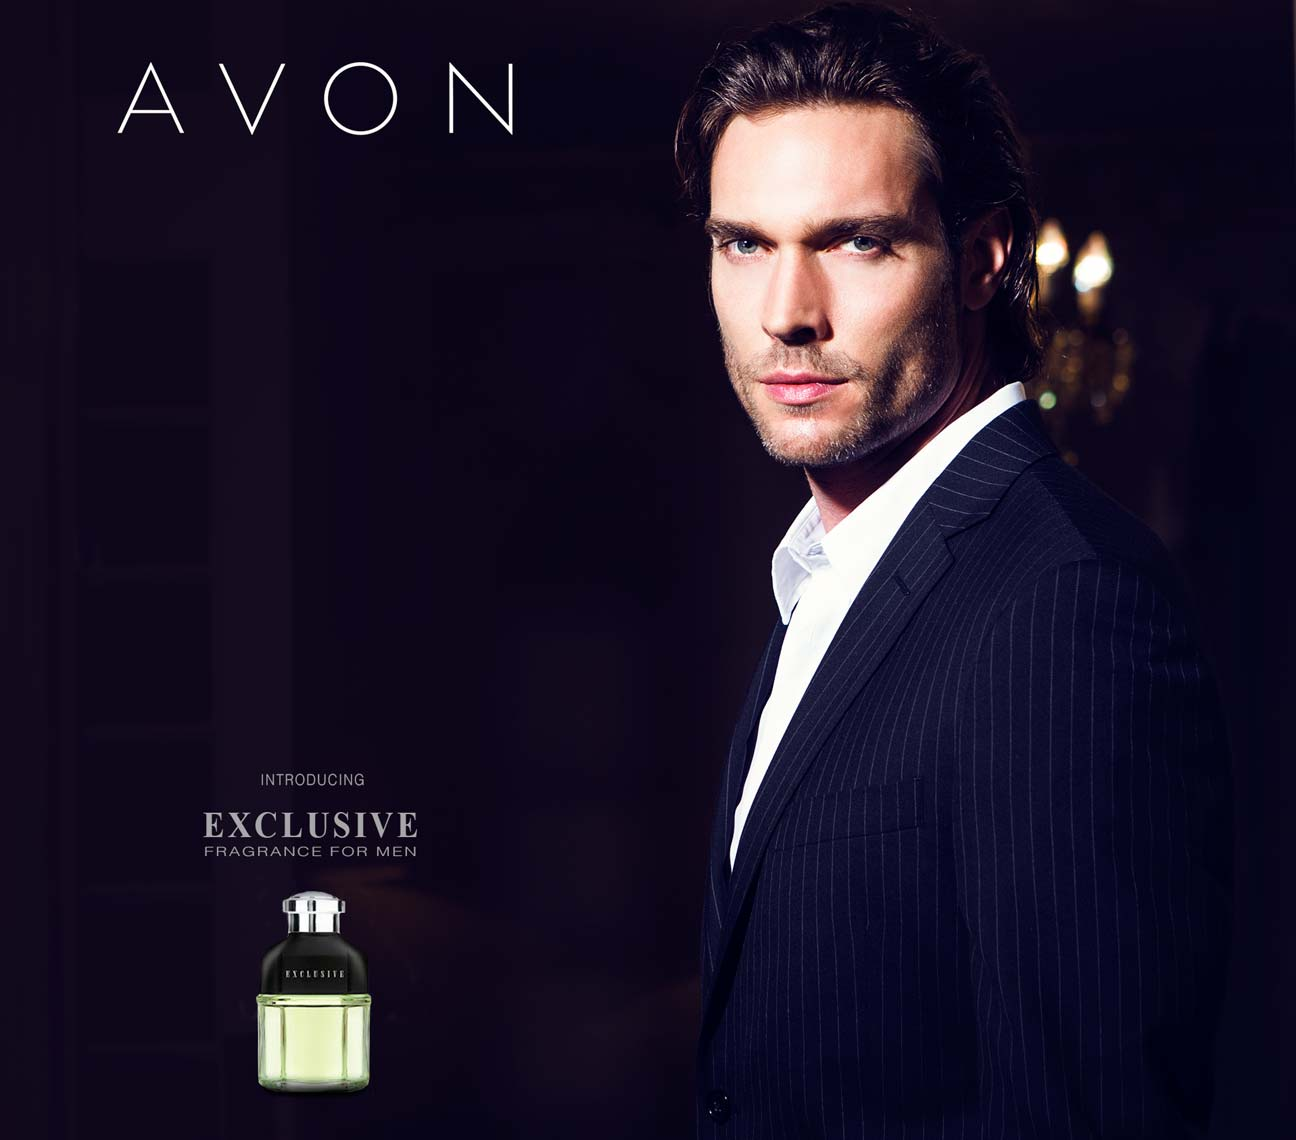 Chris-Hunt-Fashion-Photography-Fragrance-Advertising-Campaign-AVON-064